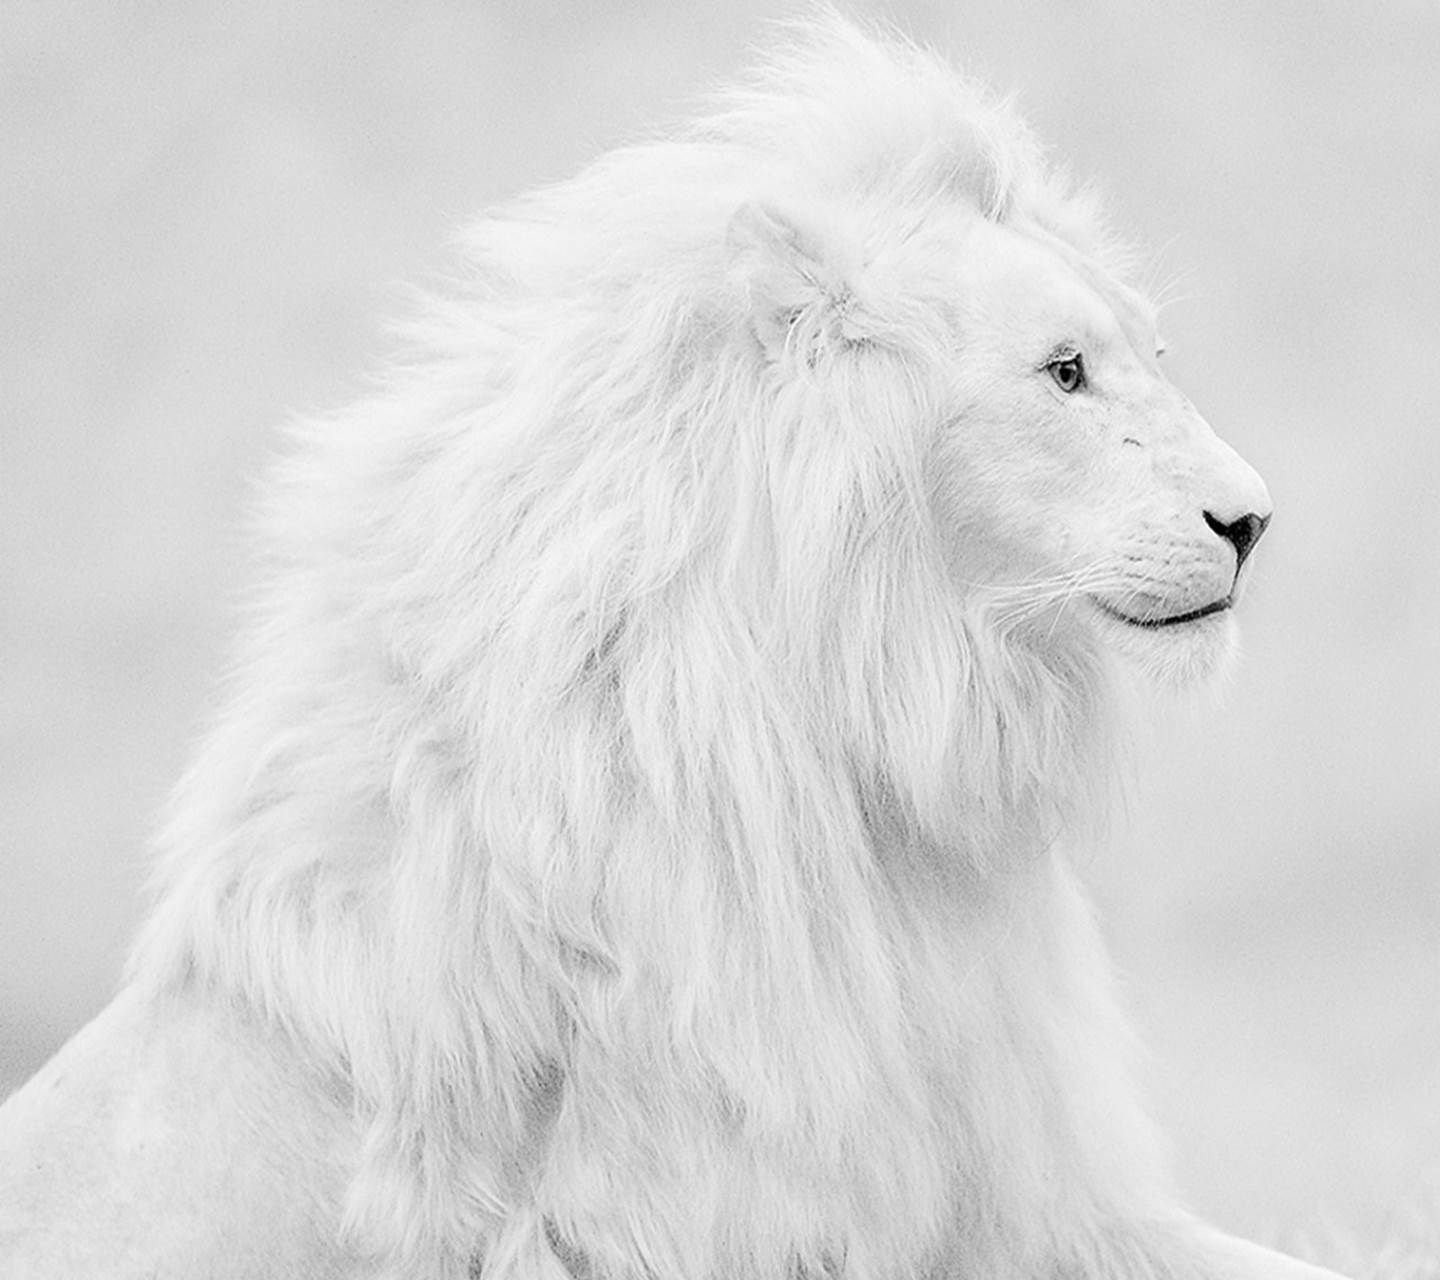 Blue Howling Lion 4k Wallpapers Top Free Blue Howling Lion 4k Backgrounds Wallpaperaccess